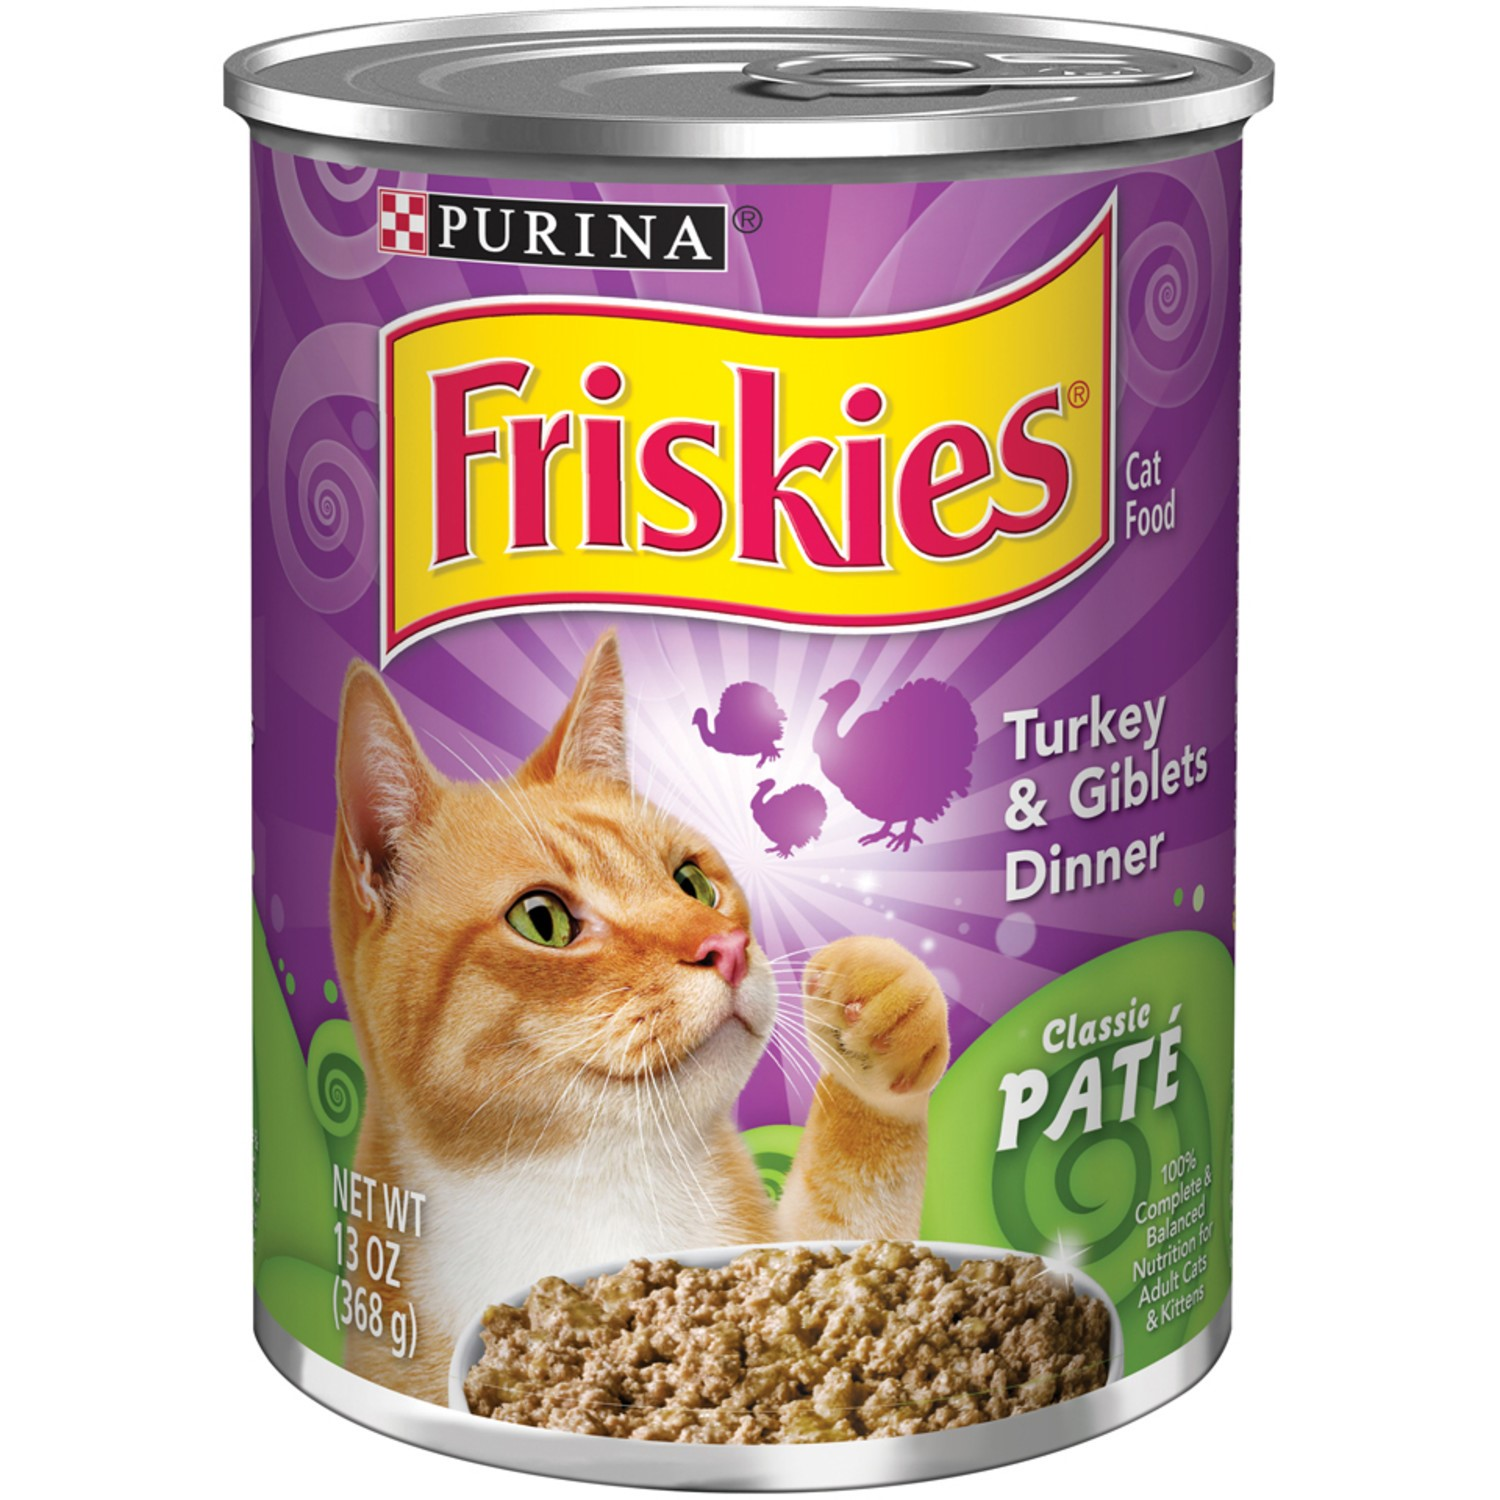 Friskies Classic Pate Turkey & Giblets Dinner Wet Cat Food, (12) 13 Oz. Cans